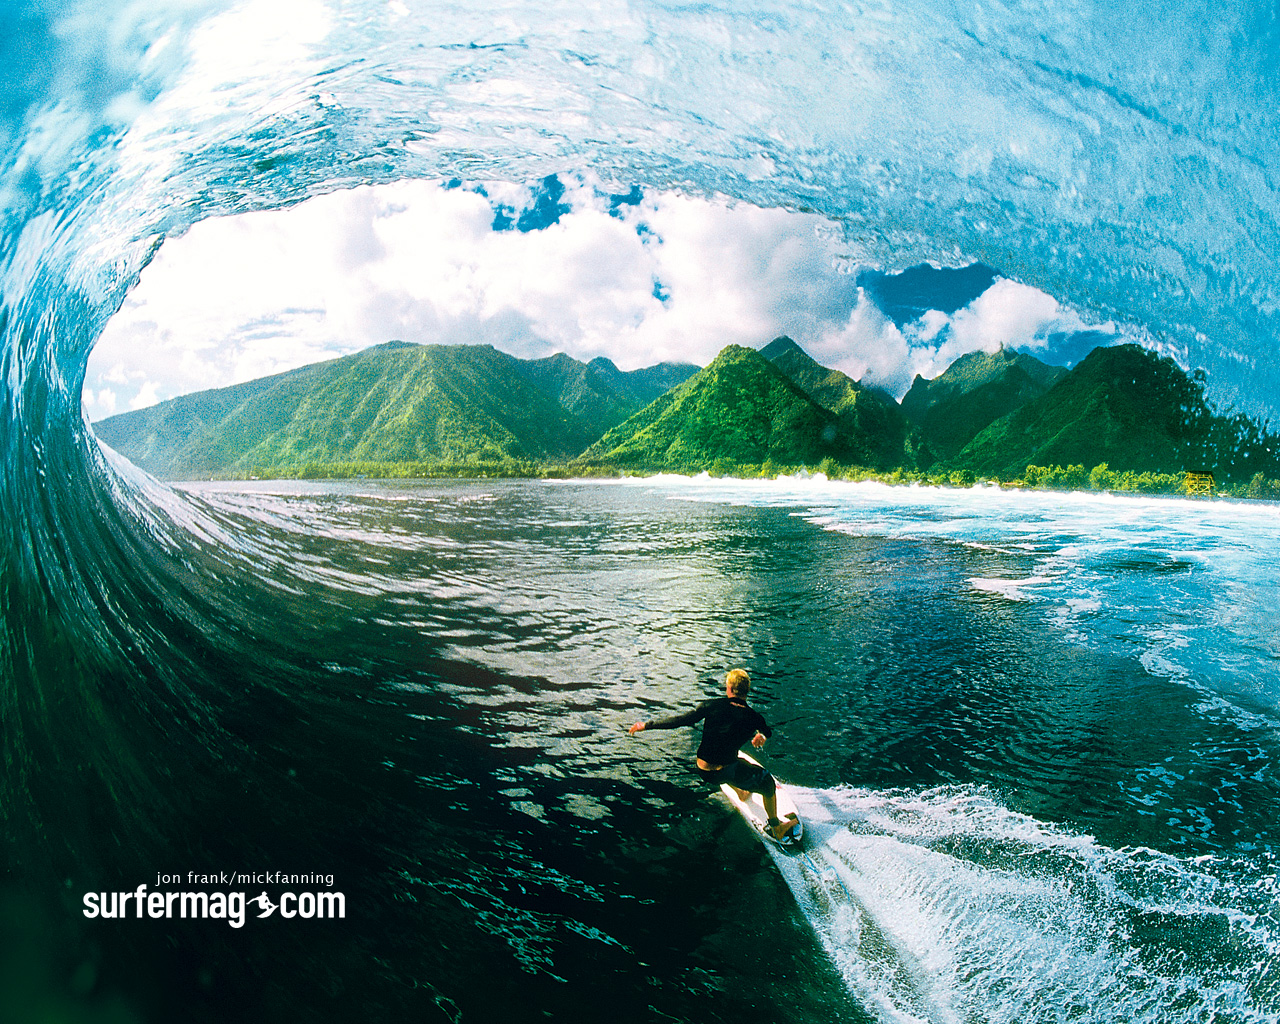 Surfing Computer Wallpapers Desktop Backgrounds 1280x1024 ID 1280x1024